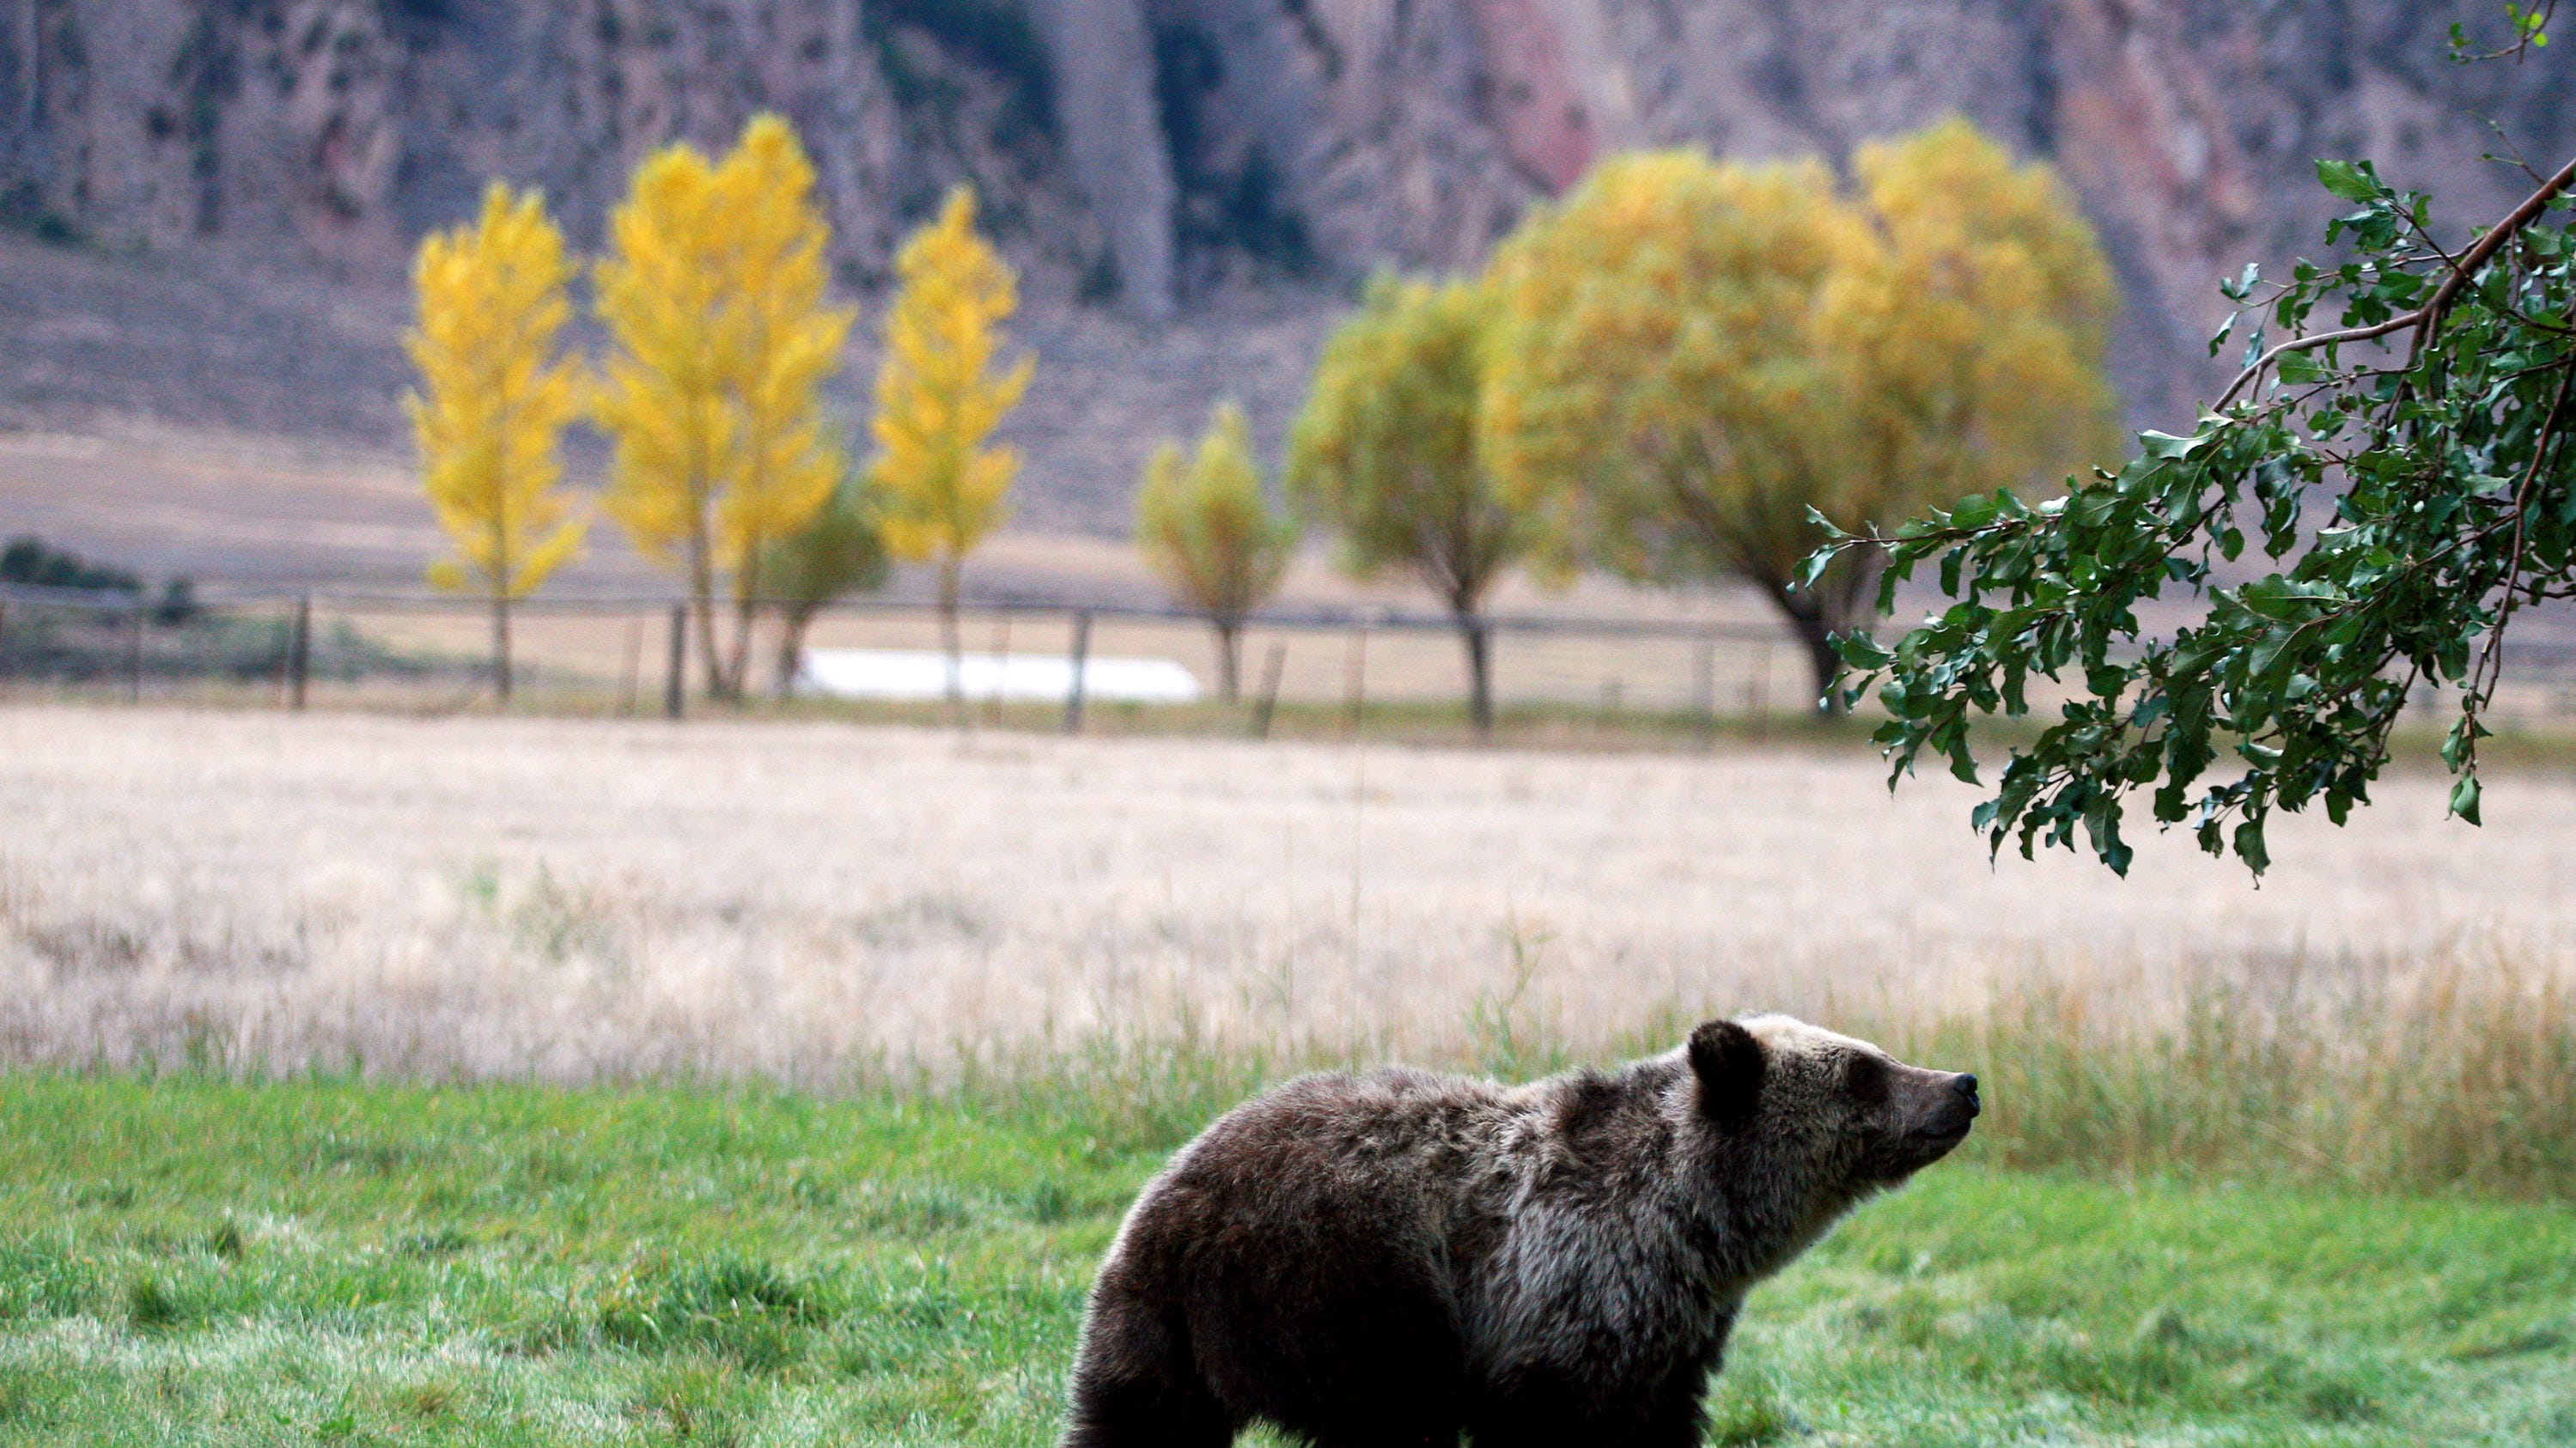 Montana wildlife commissioners adopted a grizzly bear conservation plan Monday.